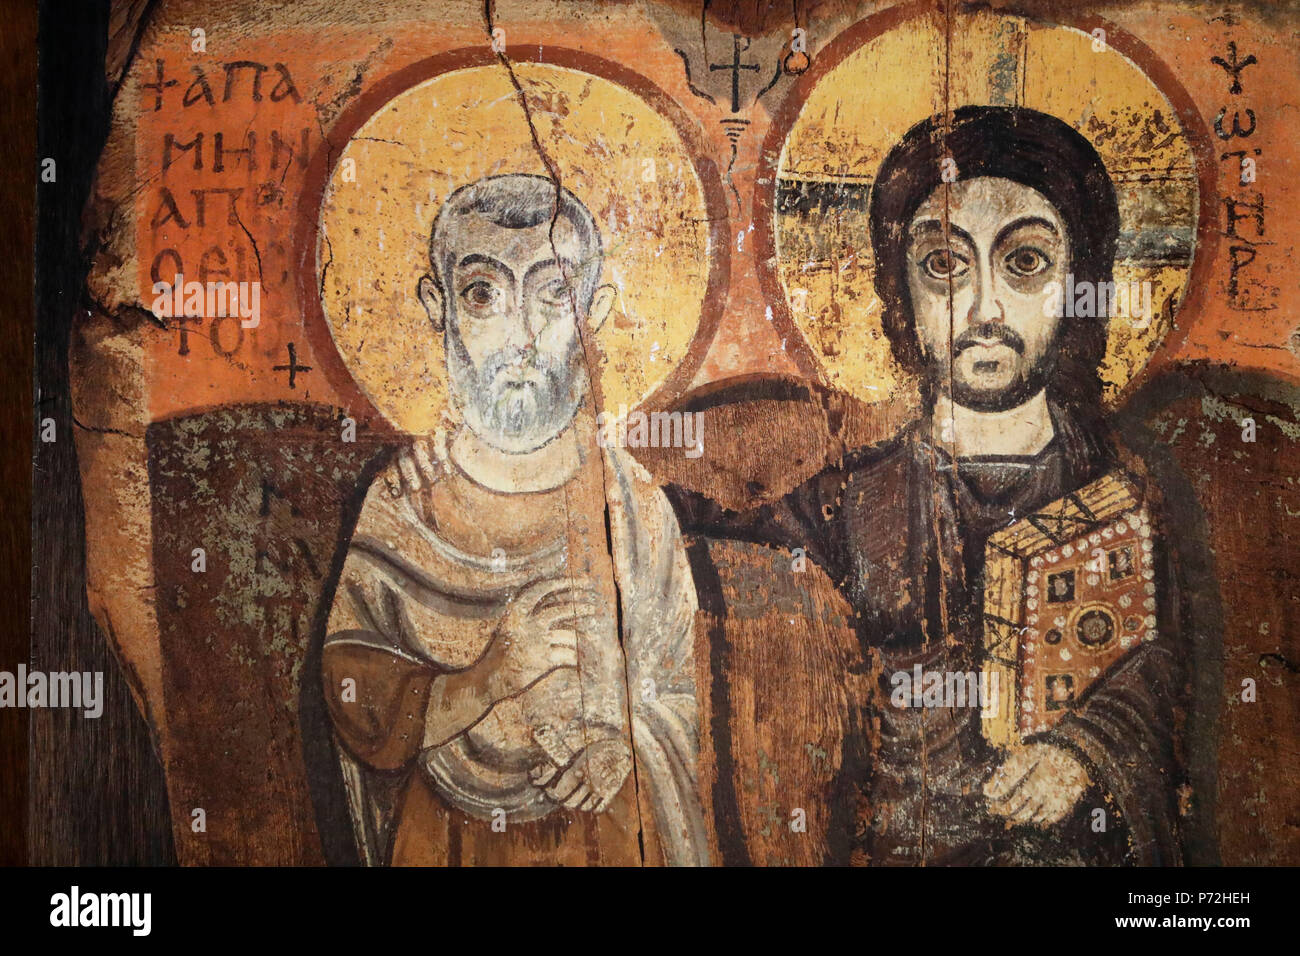 Jesus and Menas in a 6th century icon from Bawit in Middle Egypt, Saint-Pierre-le-Jeune Protestant Church, Strasbourg, France, Europe Stock Photo